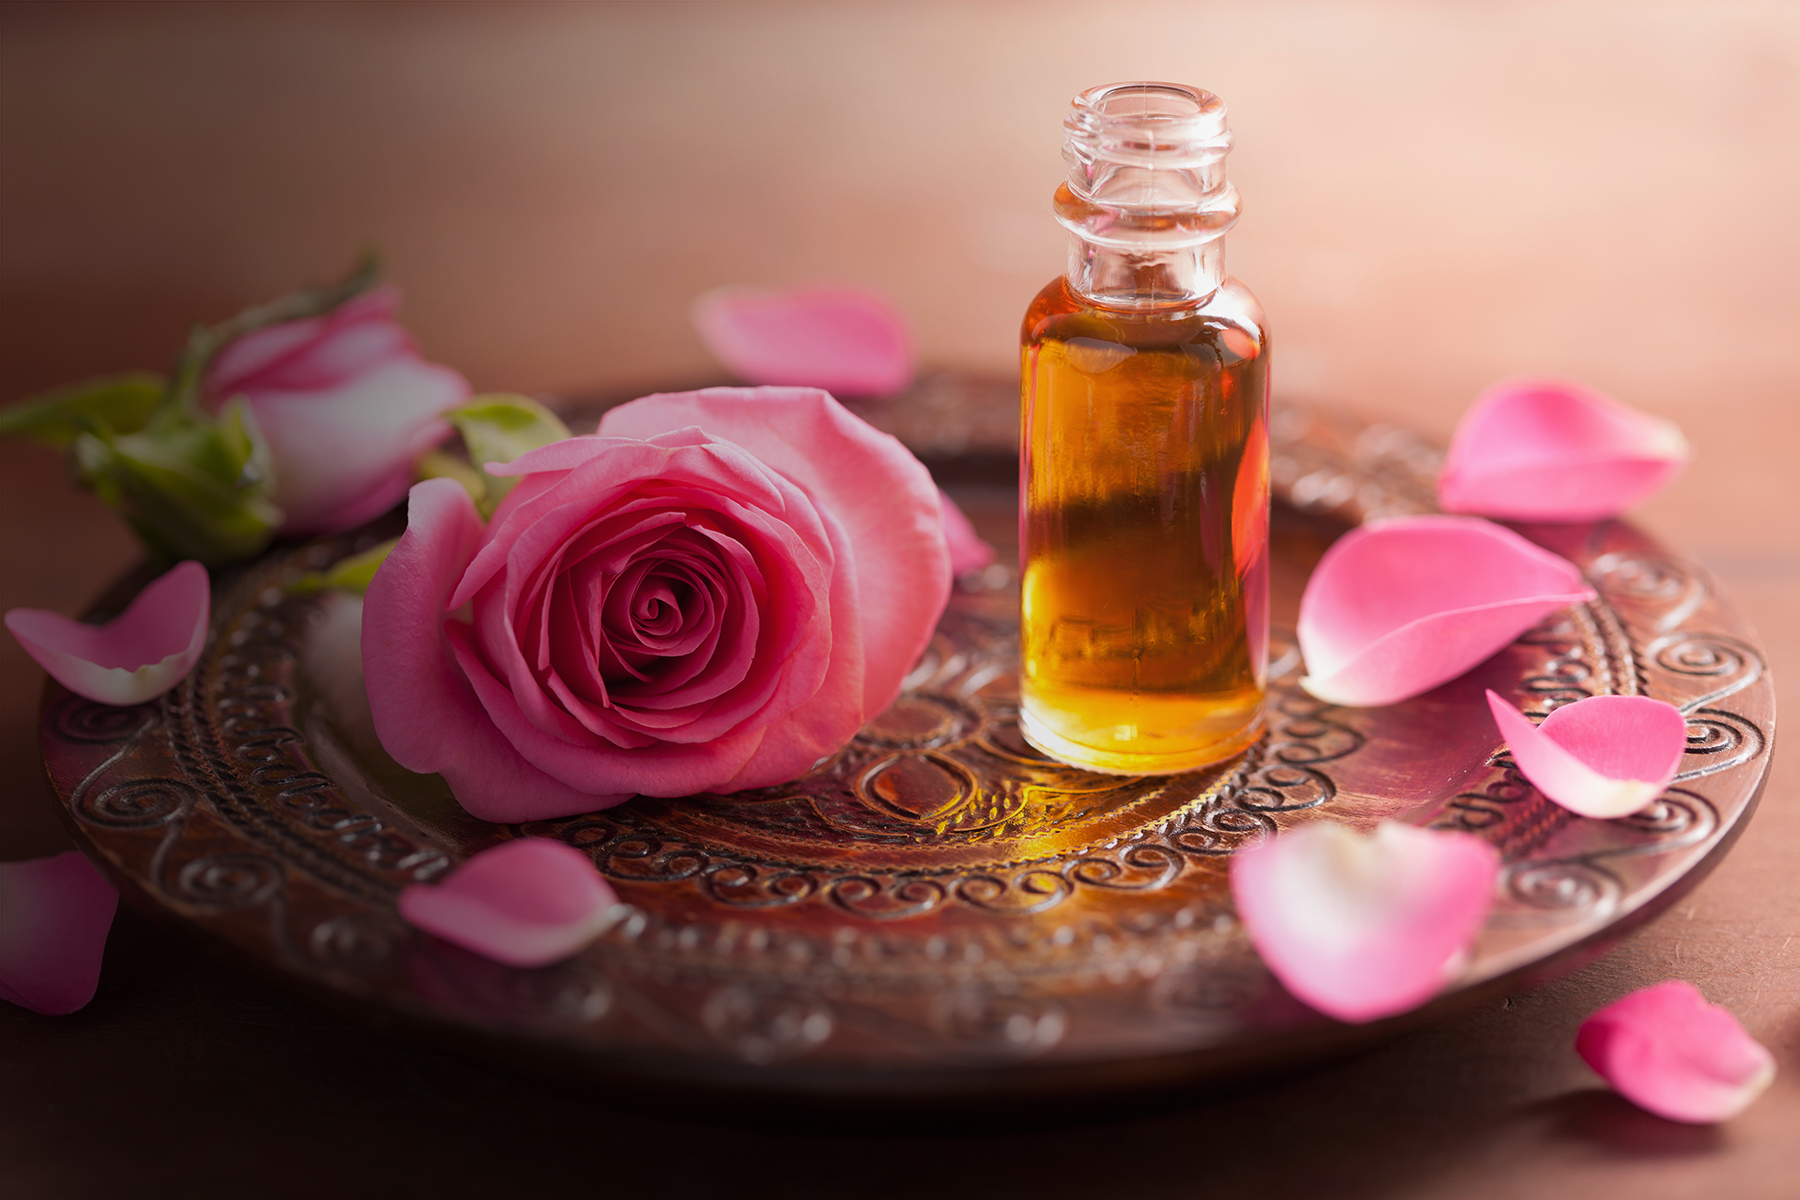 Discover the therapeutic properties of aromatherapy and essential oils -